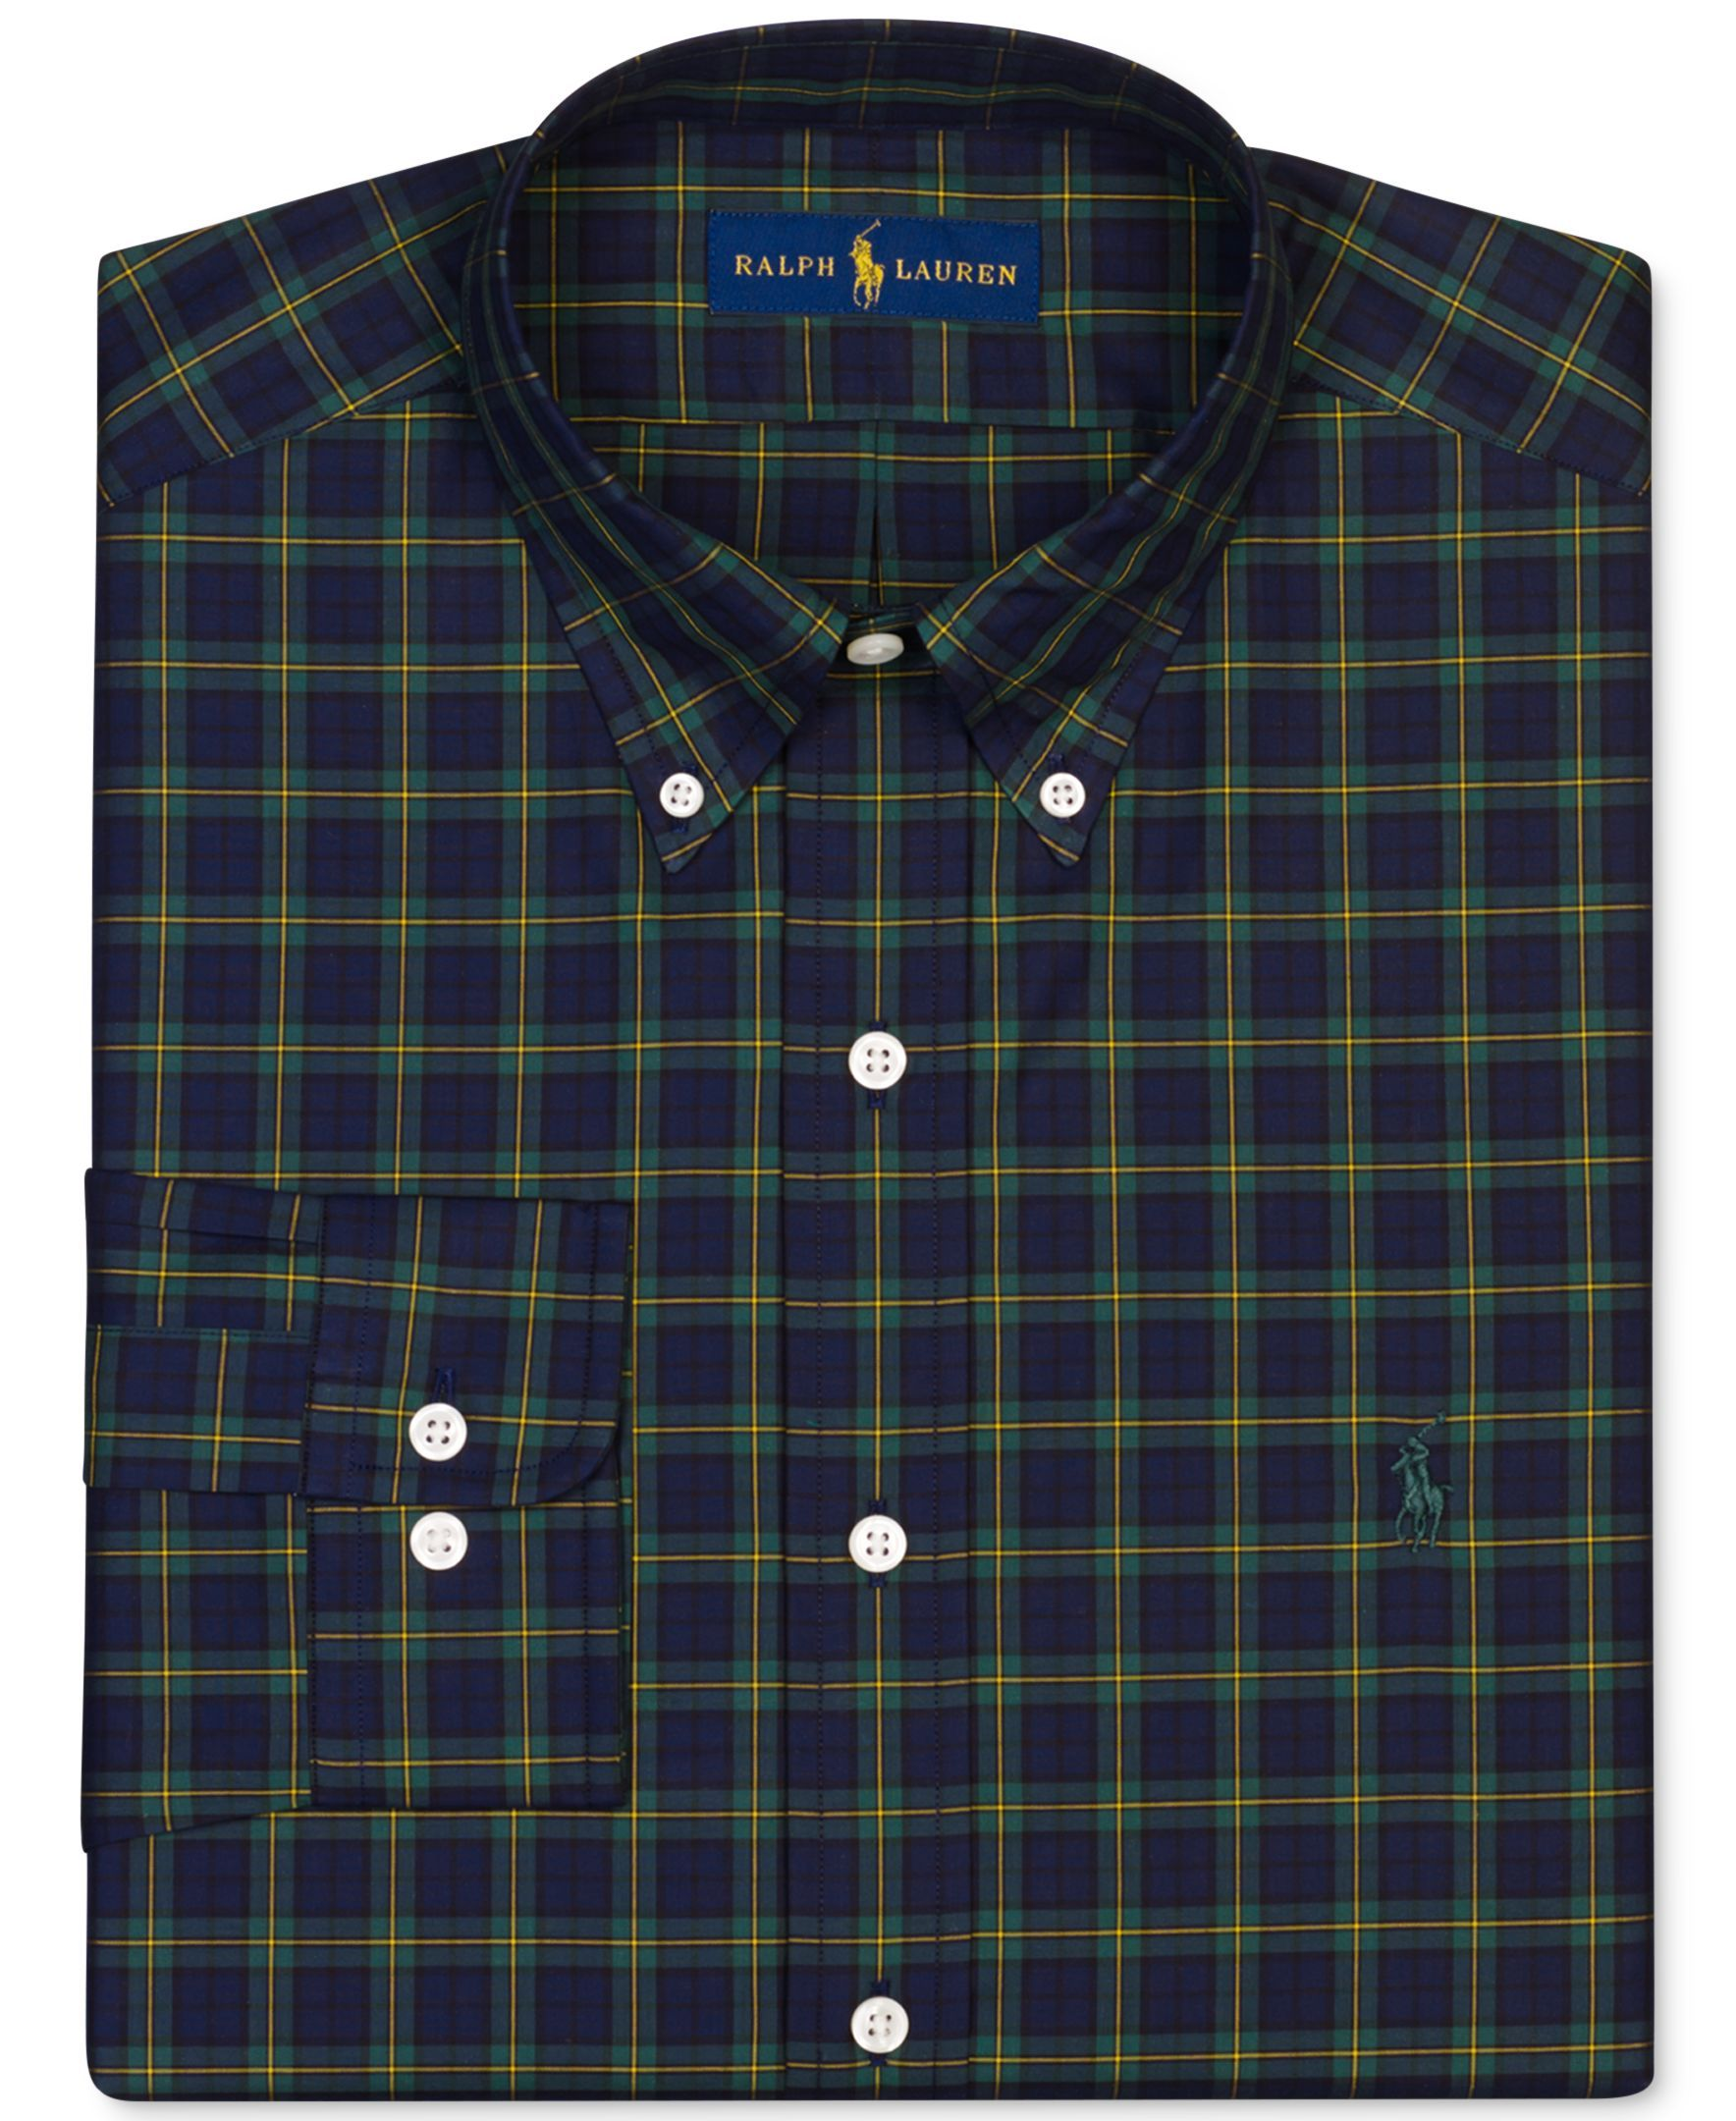 Polo Ralph Lauren Hunter Green Plaid Dress Shirt Checked Shirts In